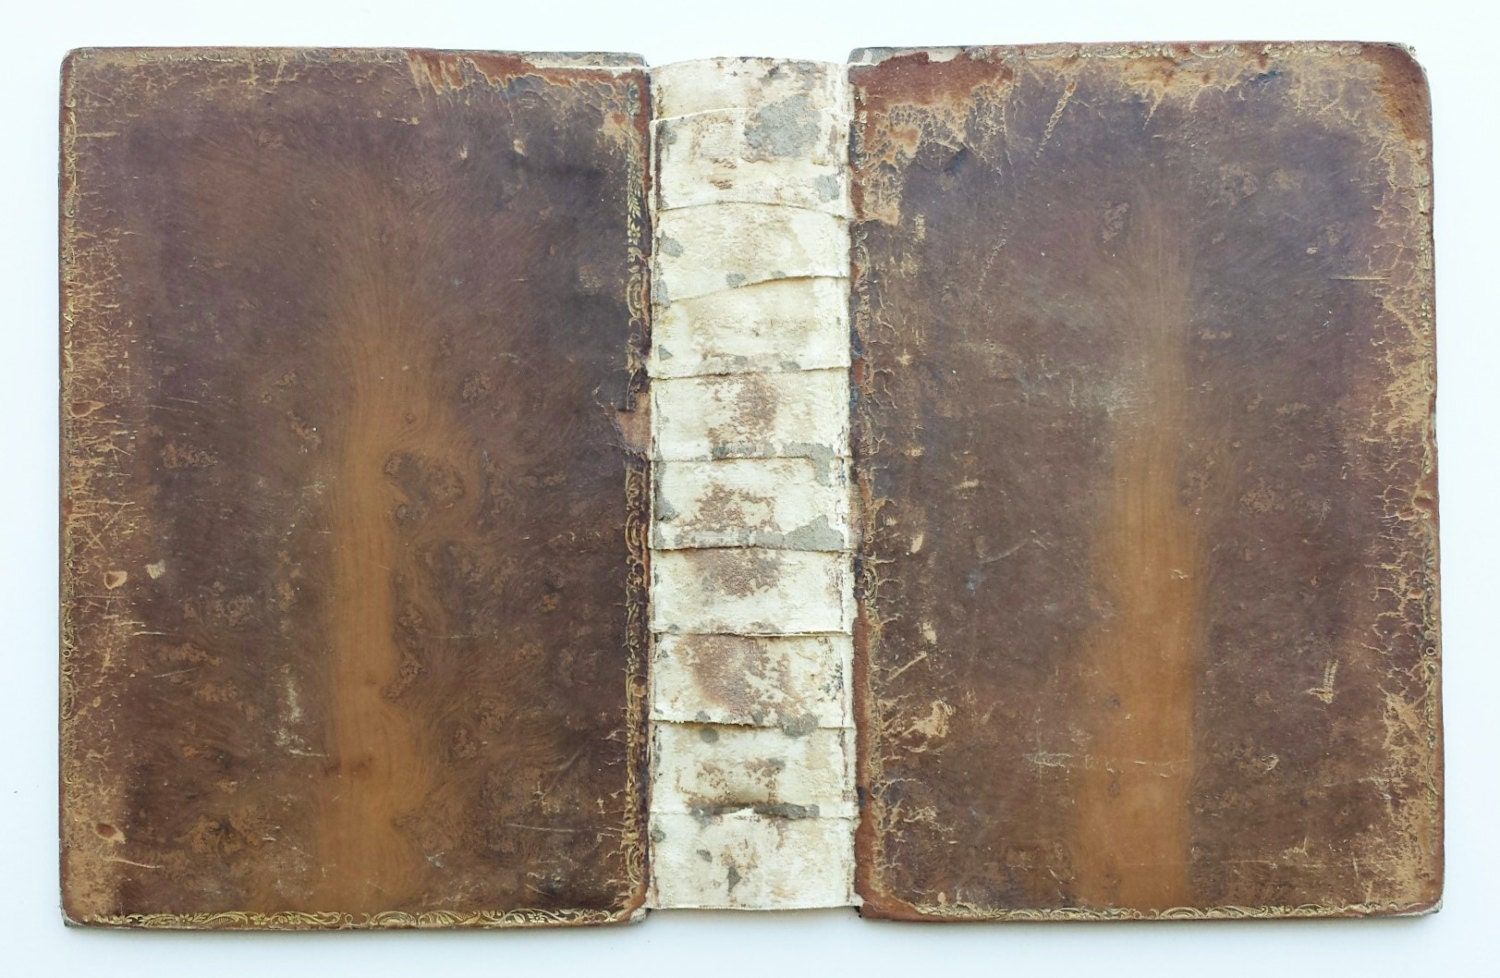 Vintage Leather Book Cover : Antique leather book covers s